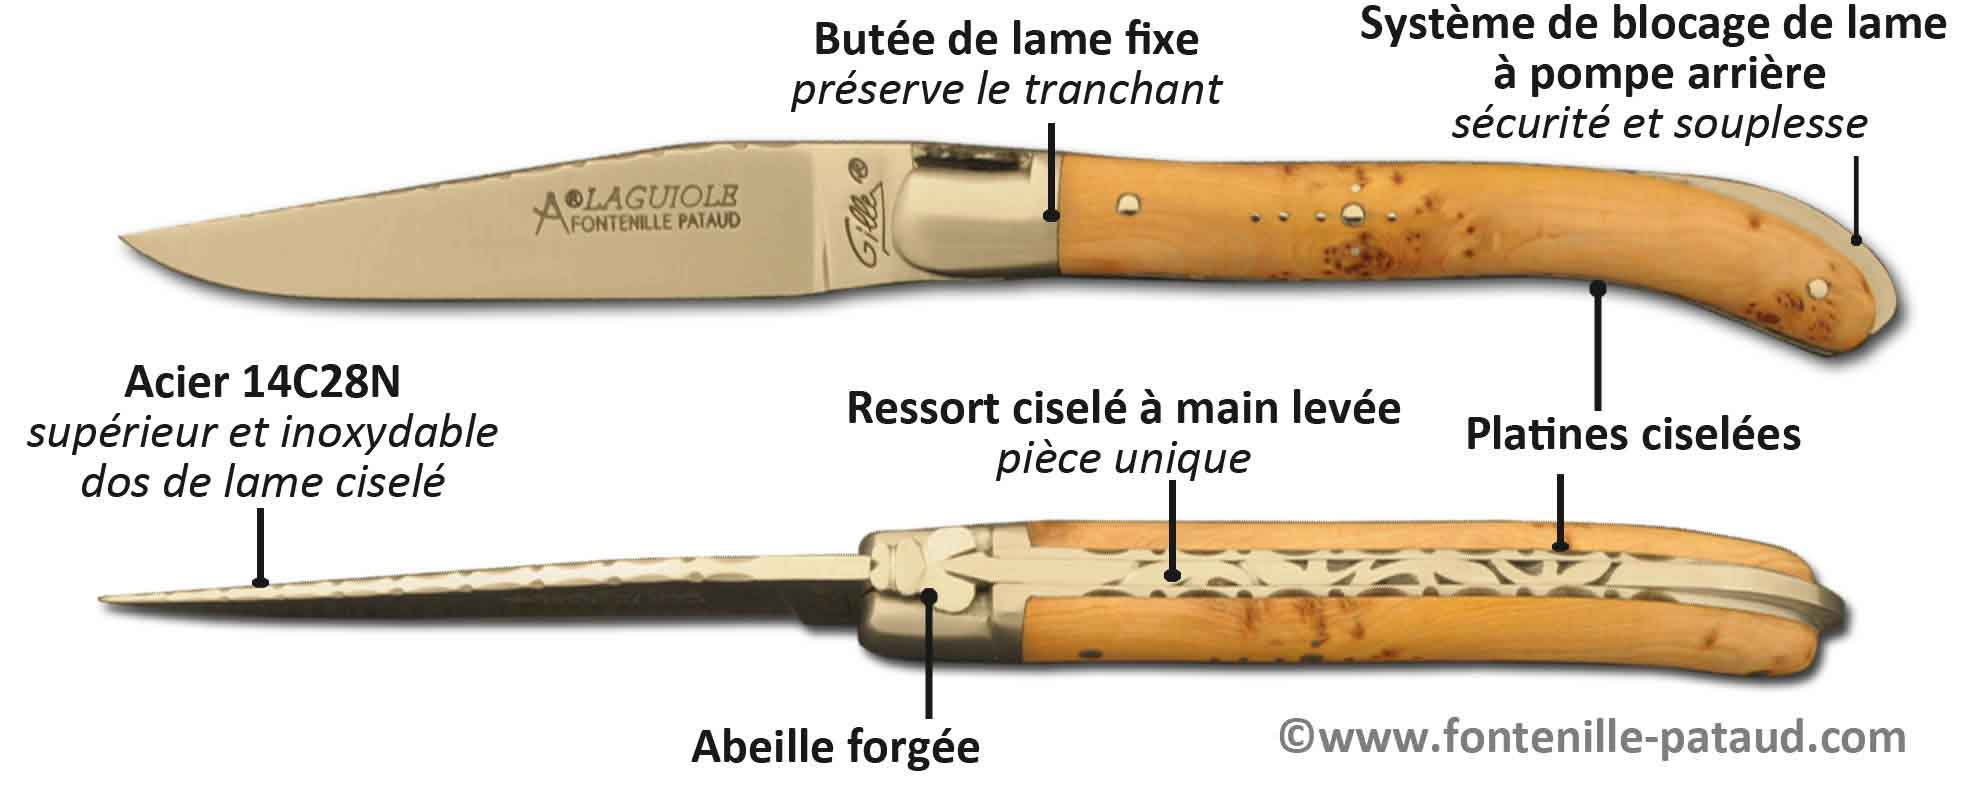 Laguiole XS, petit Laguiole made in France, avec blocage de lame